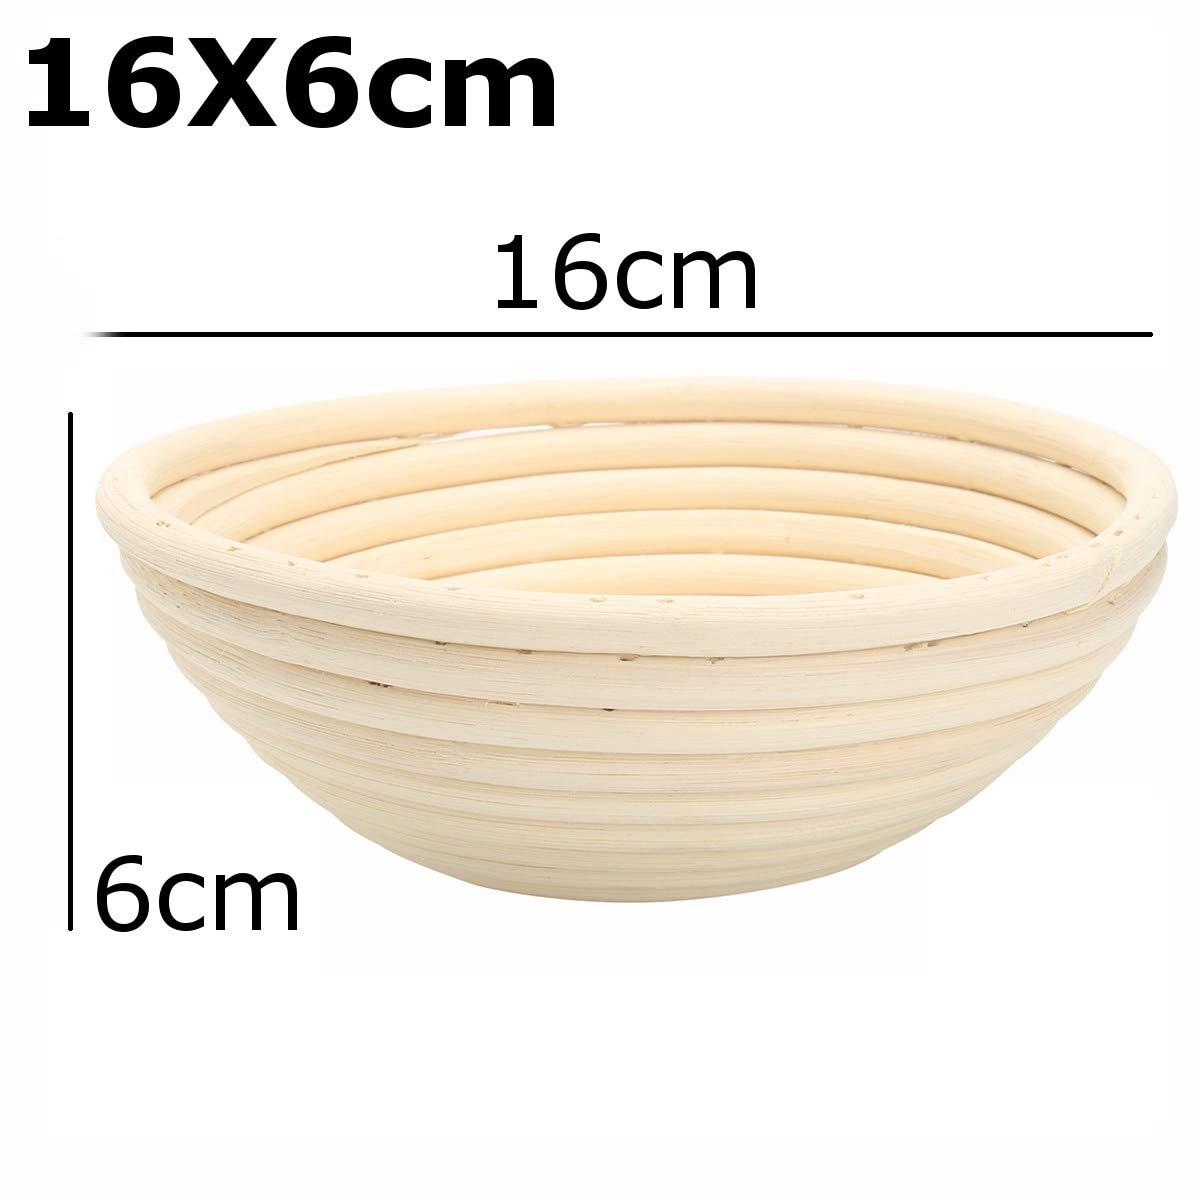 Best Quality - Storage Baskets - Bread Basket Banneton Brotform Rattan Proofing Basket Liner Round Oval Fruit Tray Dough Food Storage Container Organizer Basket - by GTIN - 1 PCs by HIBISCUS. (Image #5)